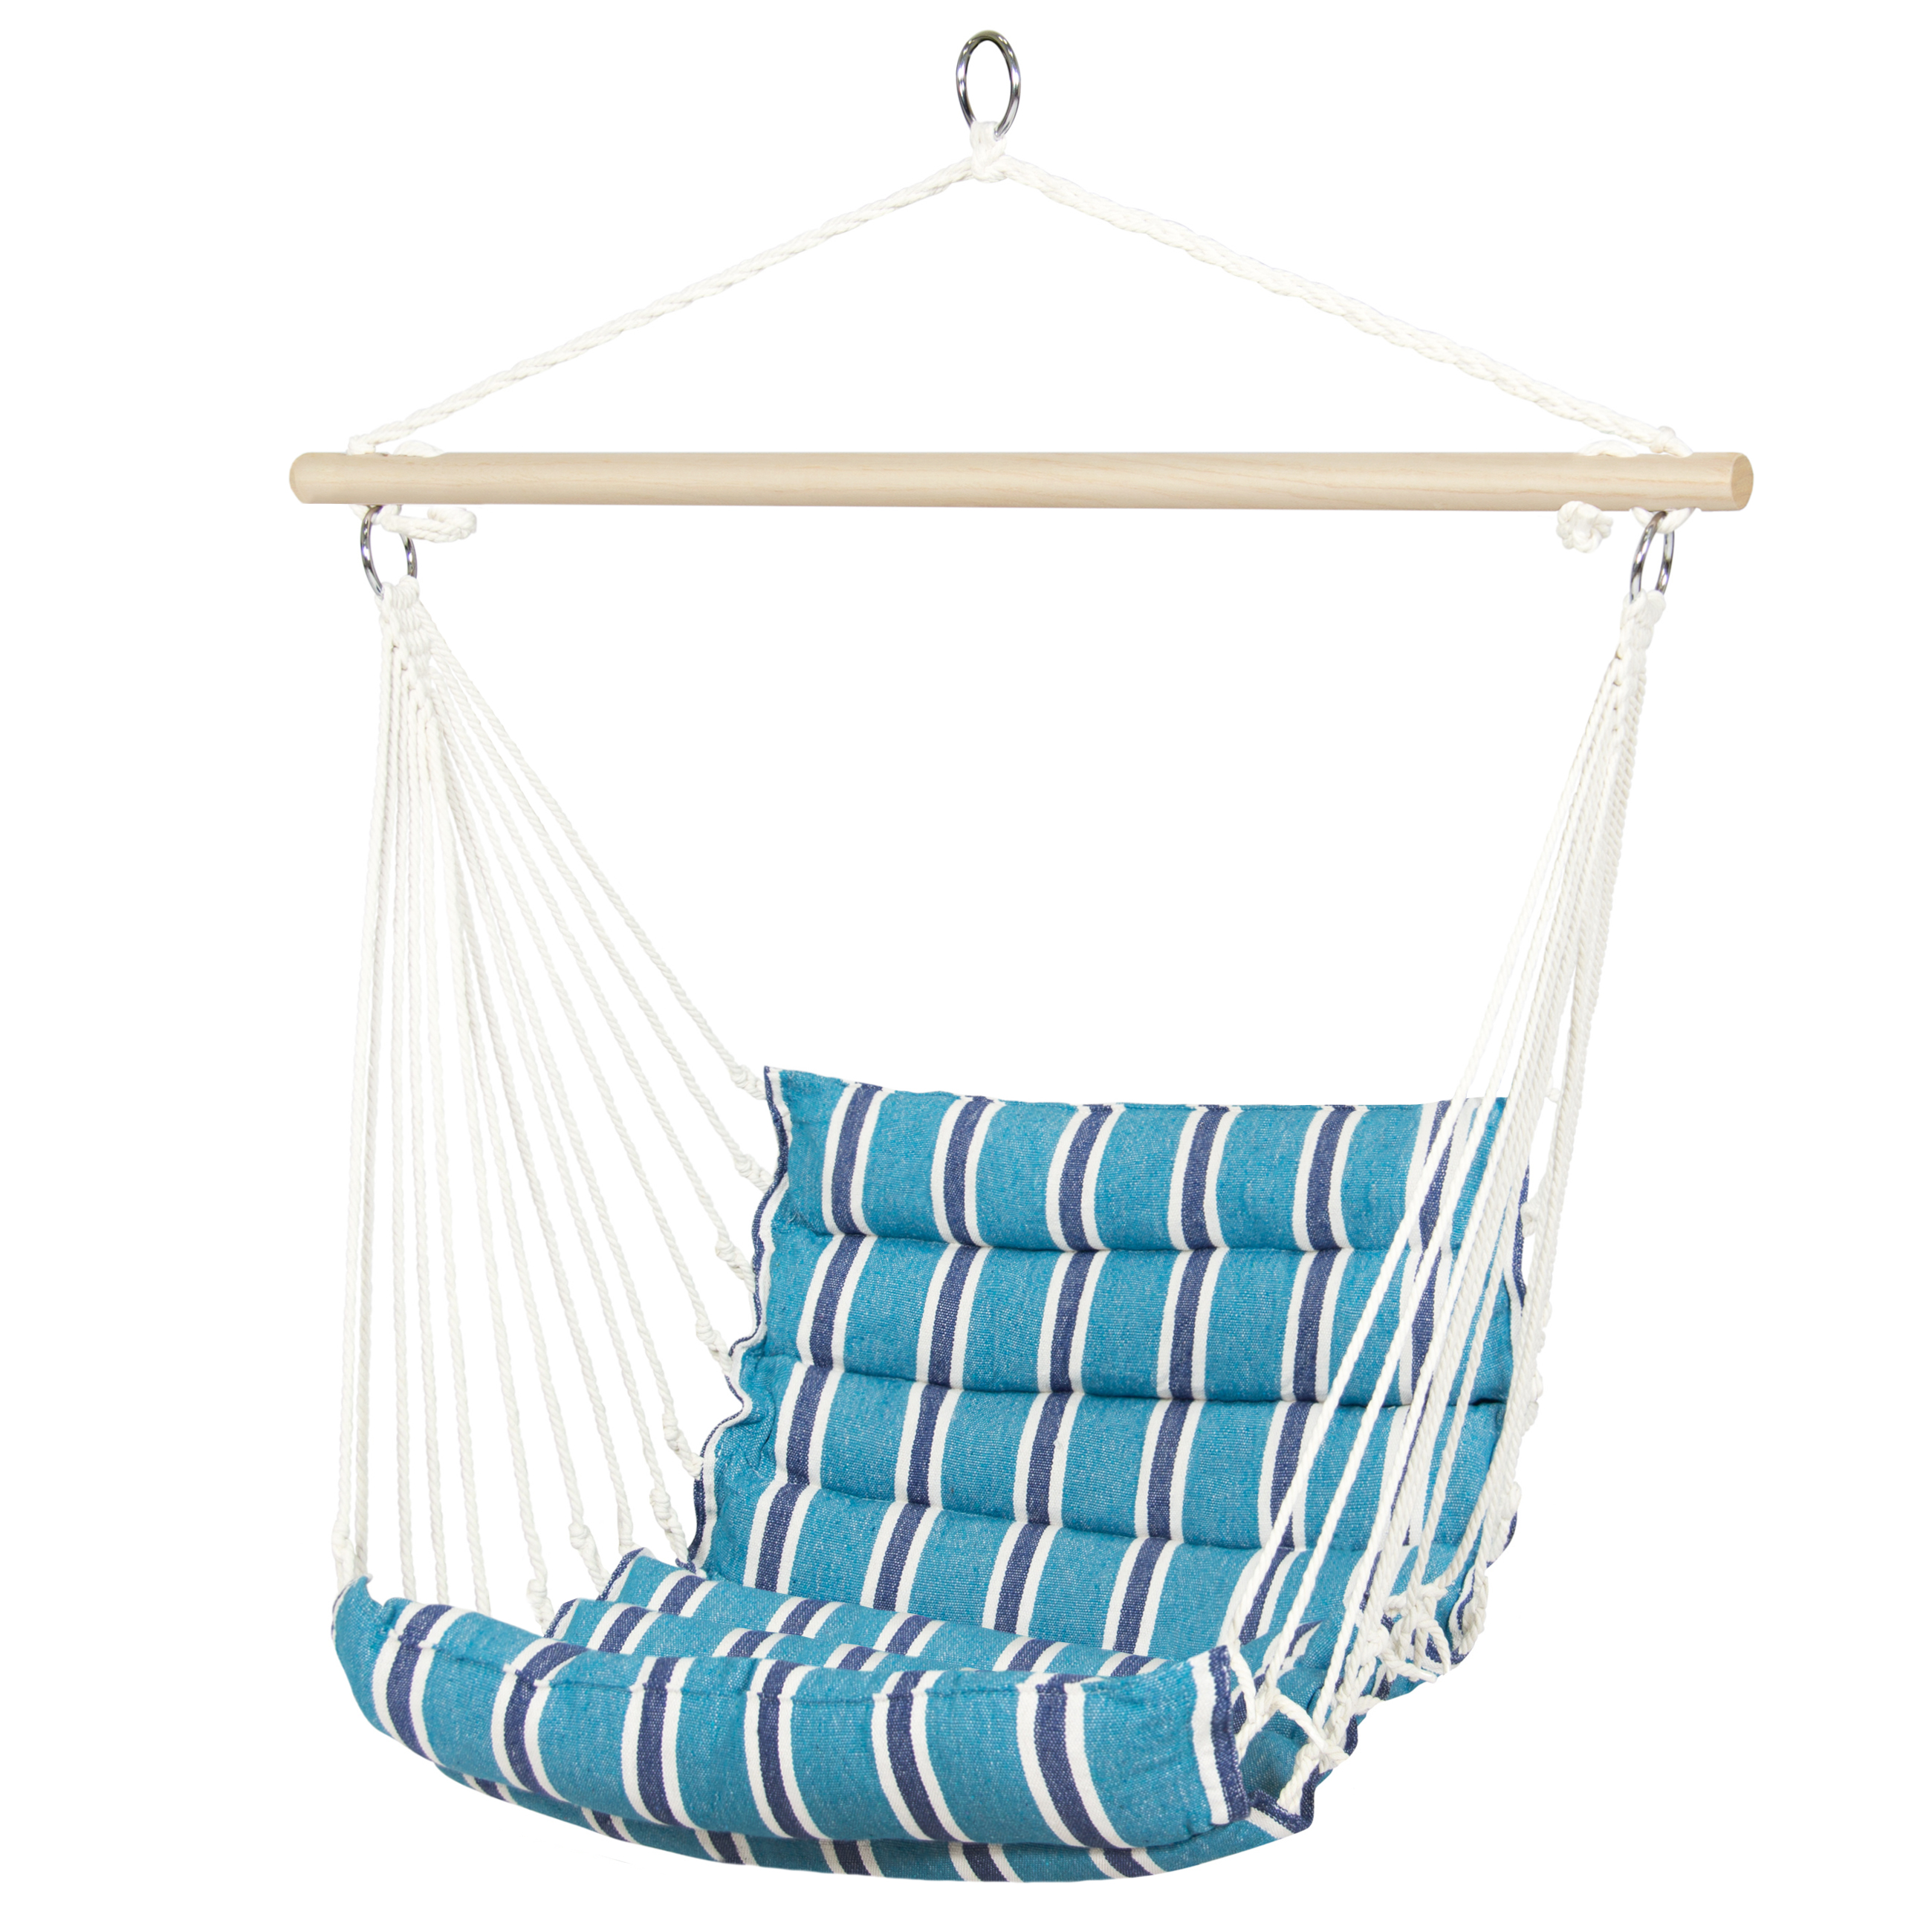 Best Choice Products Deluxe Padded Cotton Hammock Hanging Chair Indoor  Outdoor Use   Blue